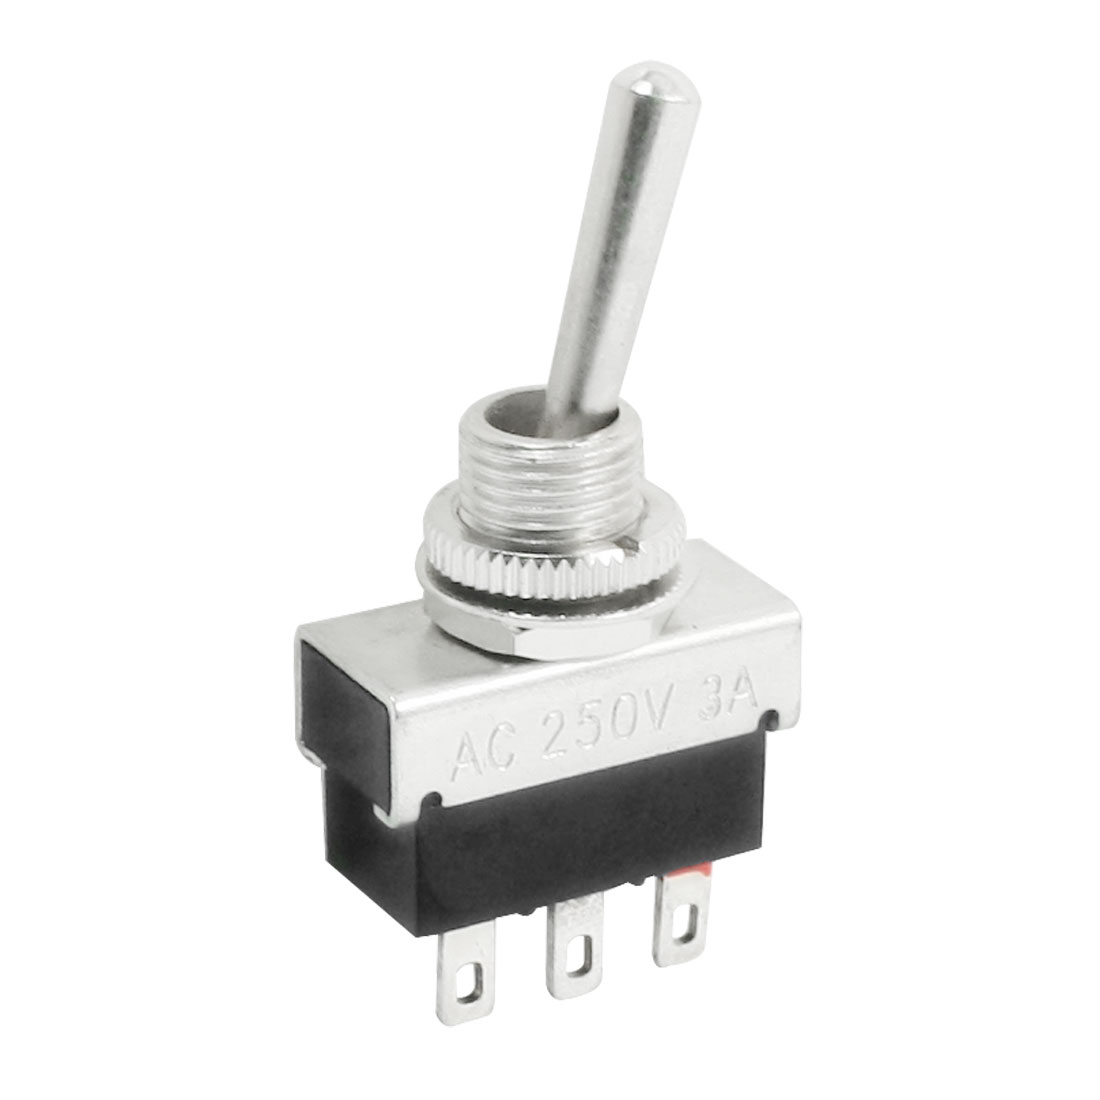 6mm Panel Mount SPDT ON/OFF 2 Position Power Toggle Switch AC 250V 3A KN4